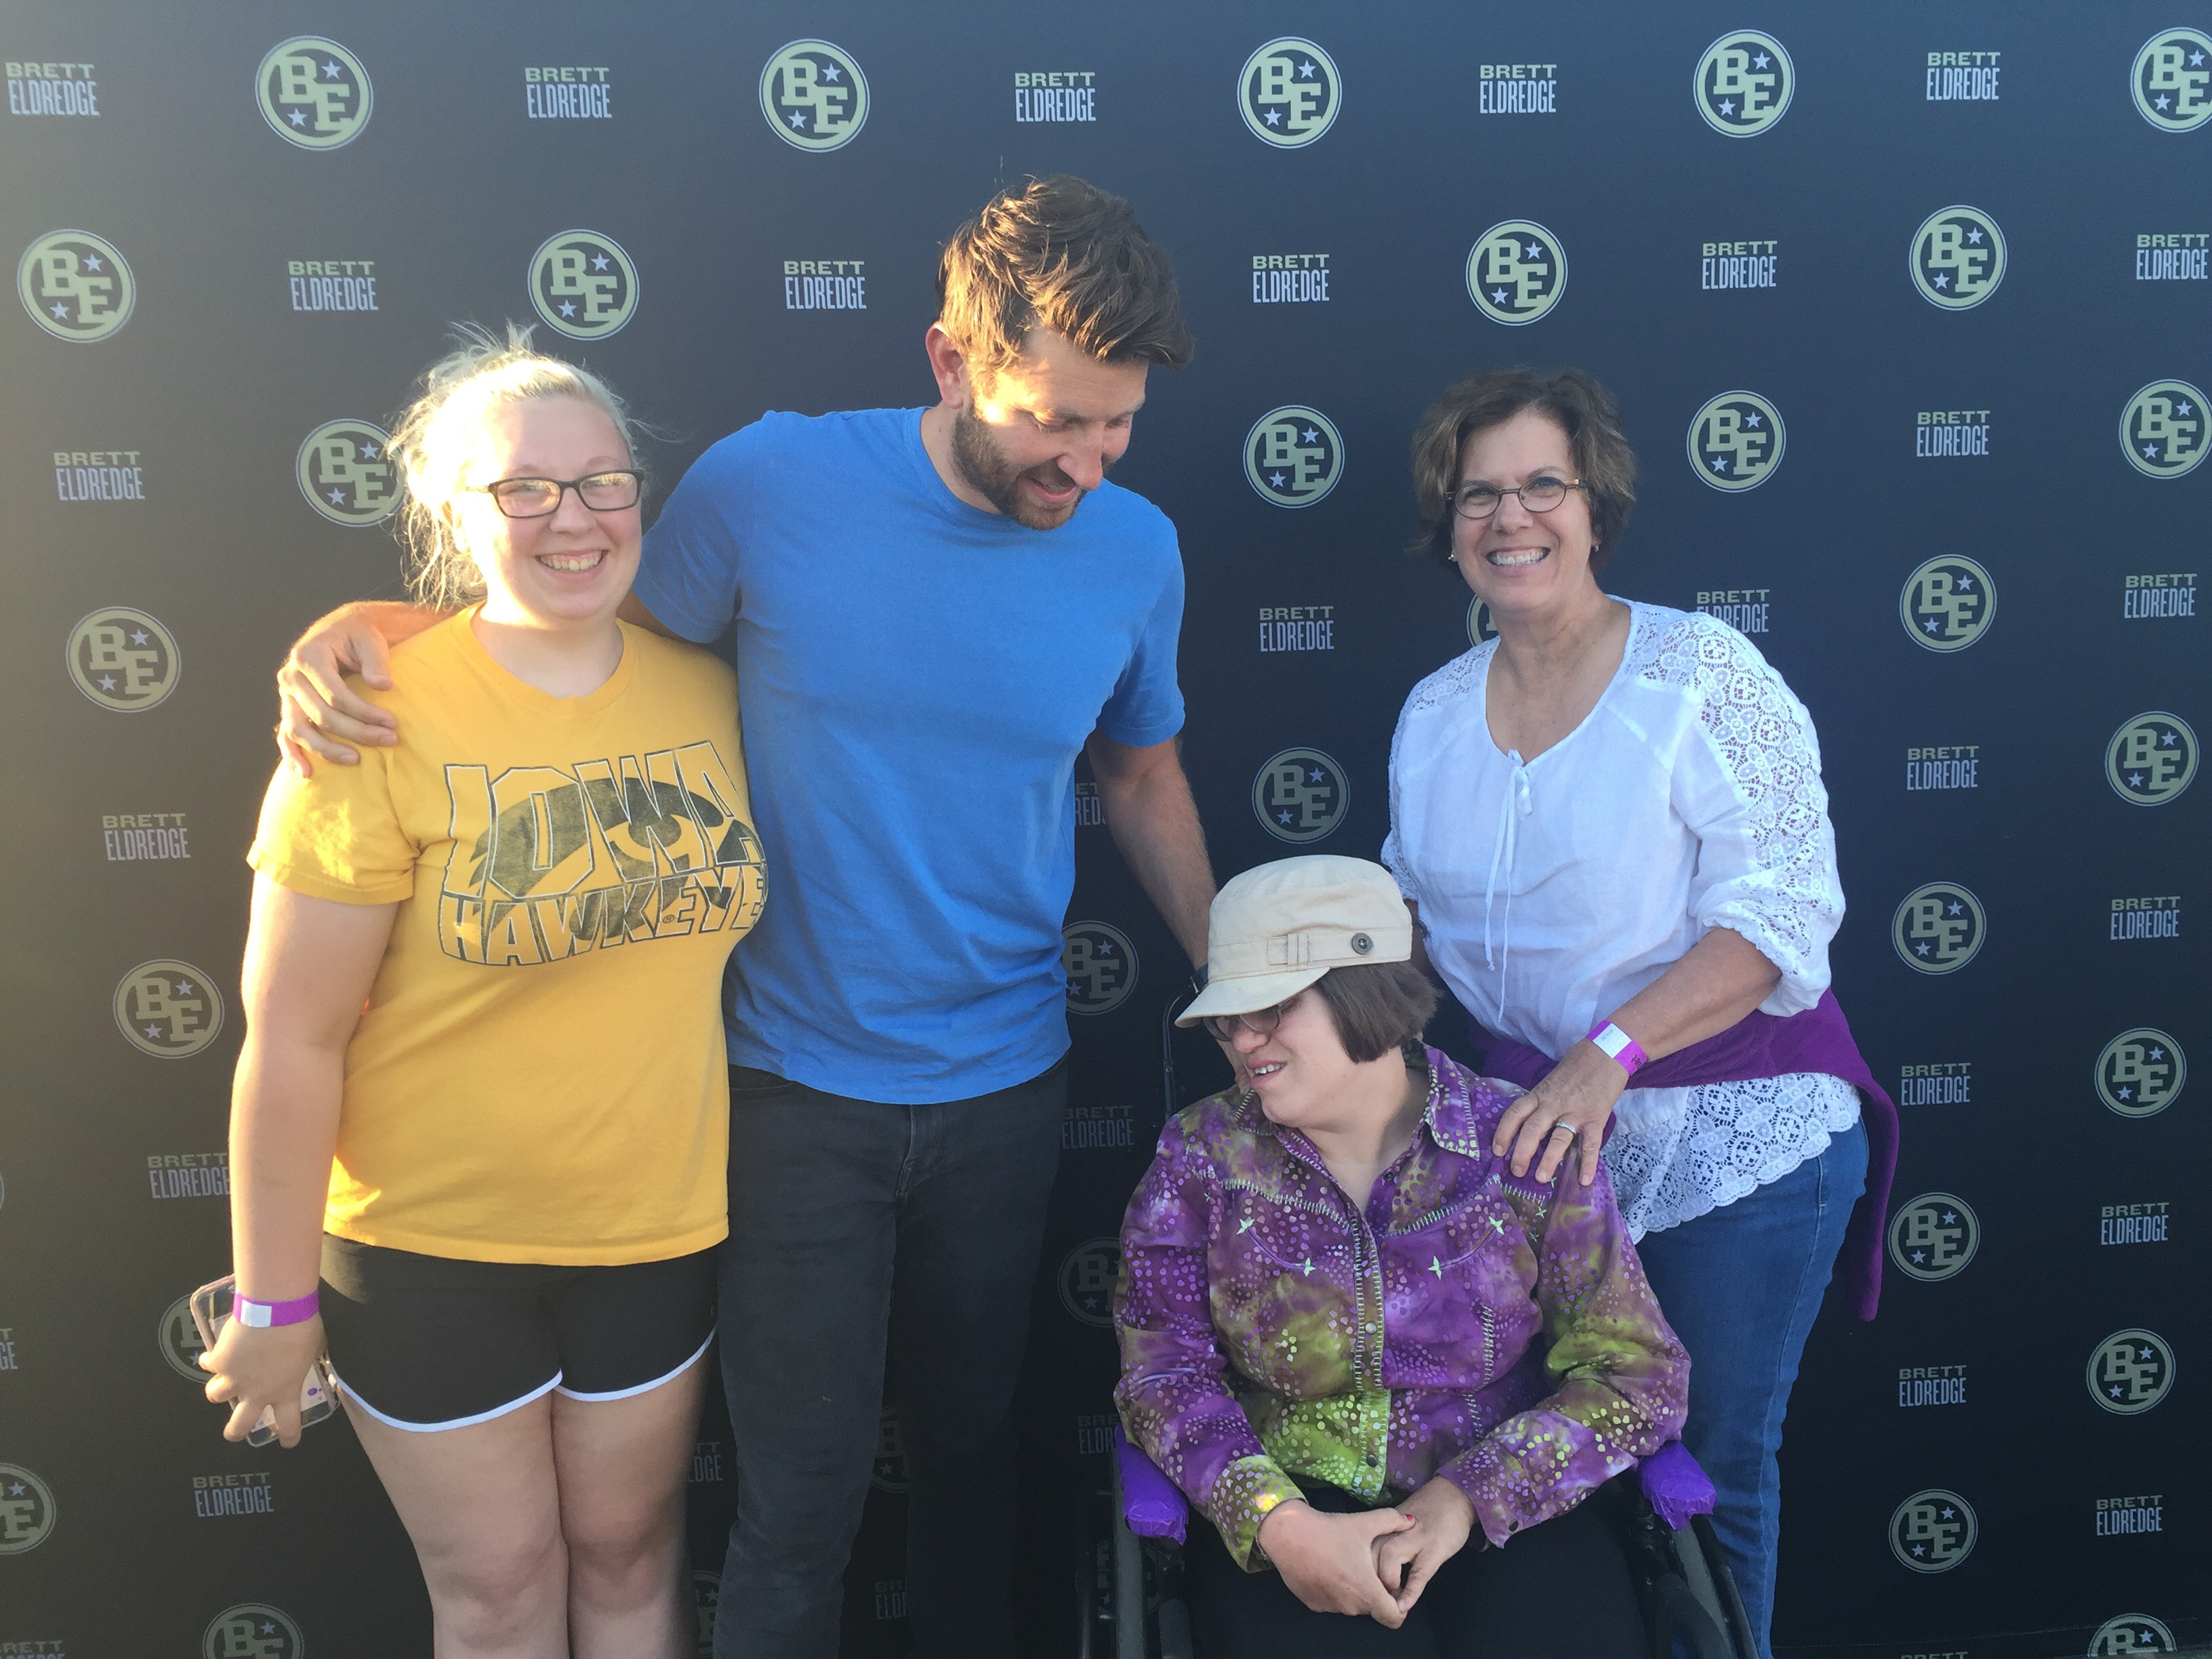 Nice Guy Brett Eldredge Made A Good Impression At The Mississippi